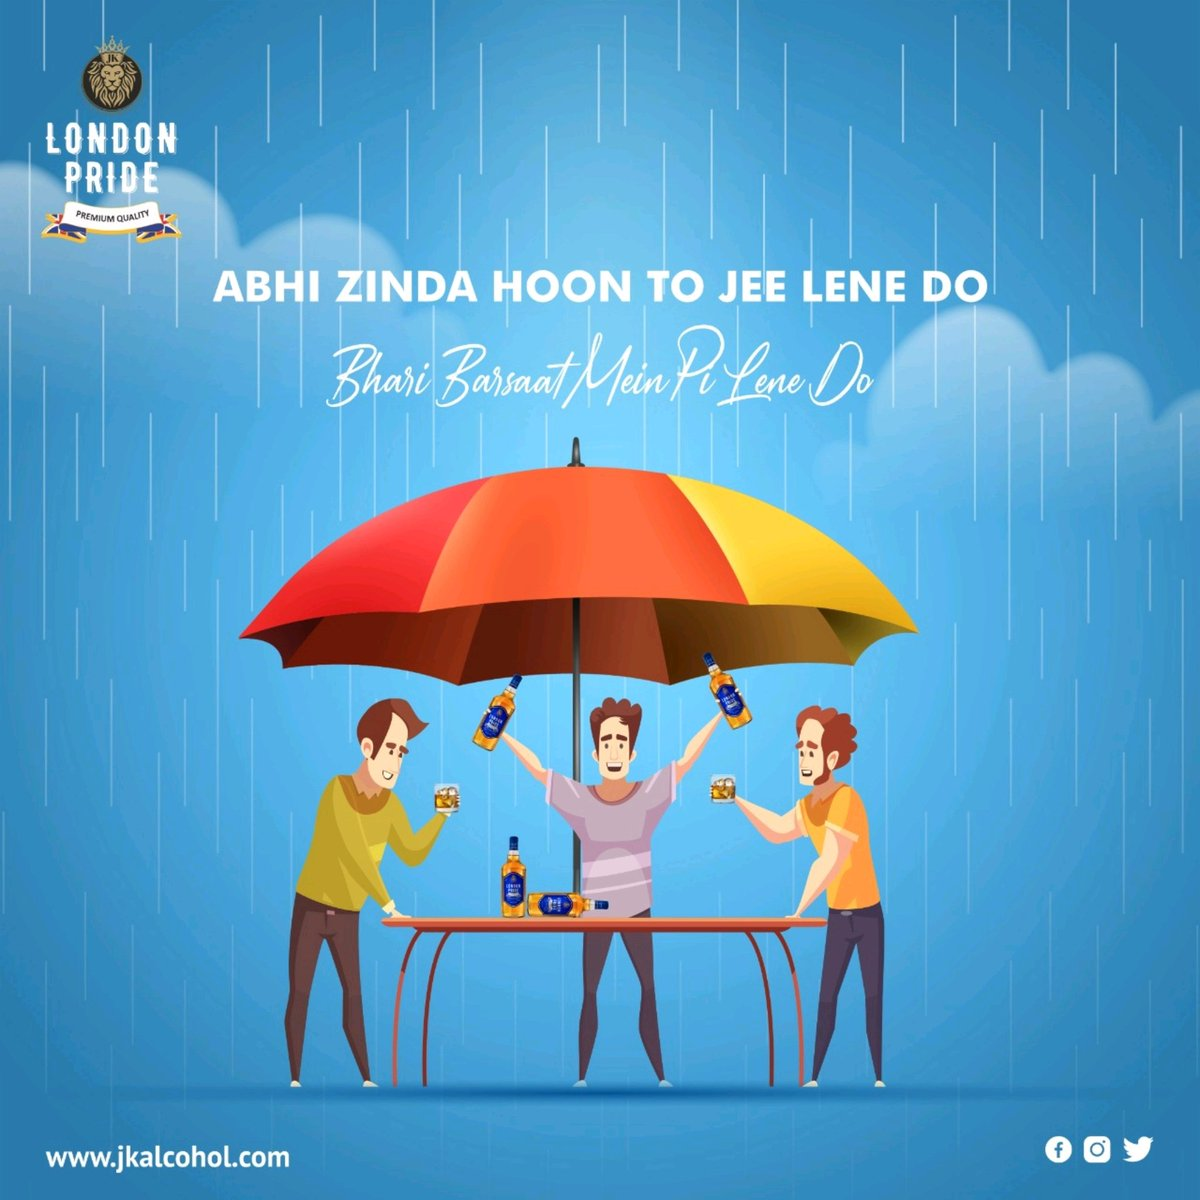 Want to have a drink with your buddies while it's raining? Then, what are you waiting for? Get yourself a bottle and enjoy your day! . #jkalcohol #Jkgroup #JkEnterprises #londonpride #Londonreserve #whisky #vodka #rum #premiumwhisky #indore #gwalior #Bhopal #jabalpur https://t.co/ai72T7KLVz